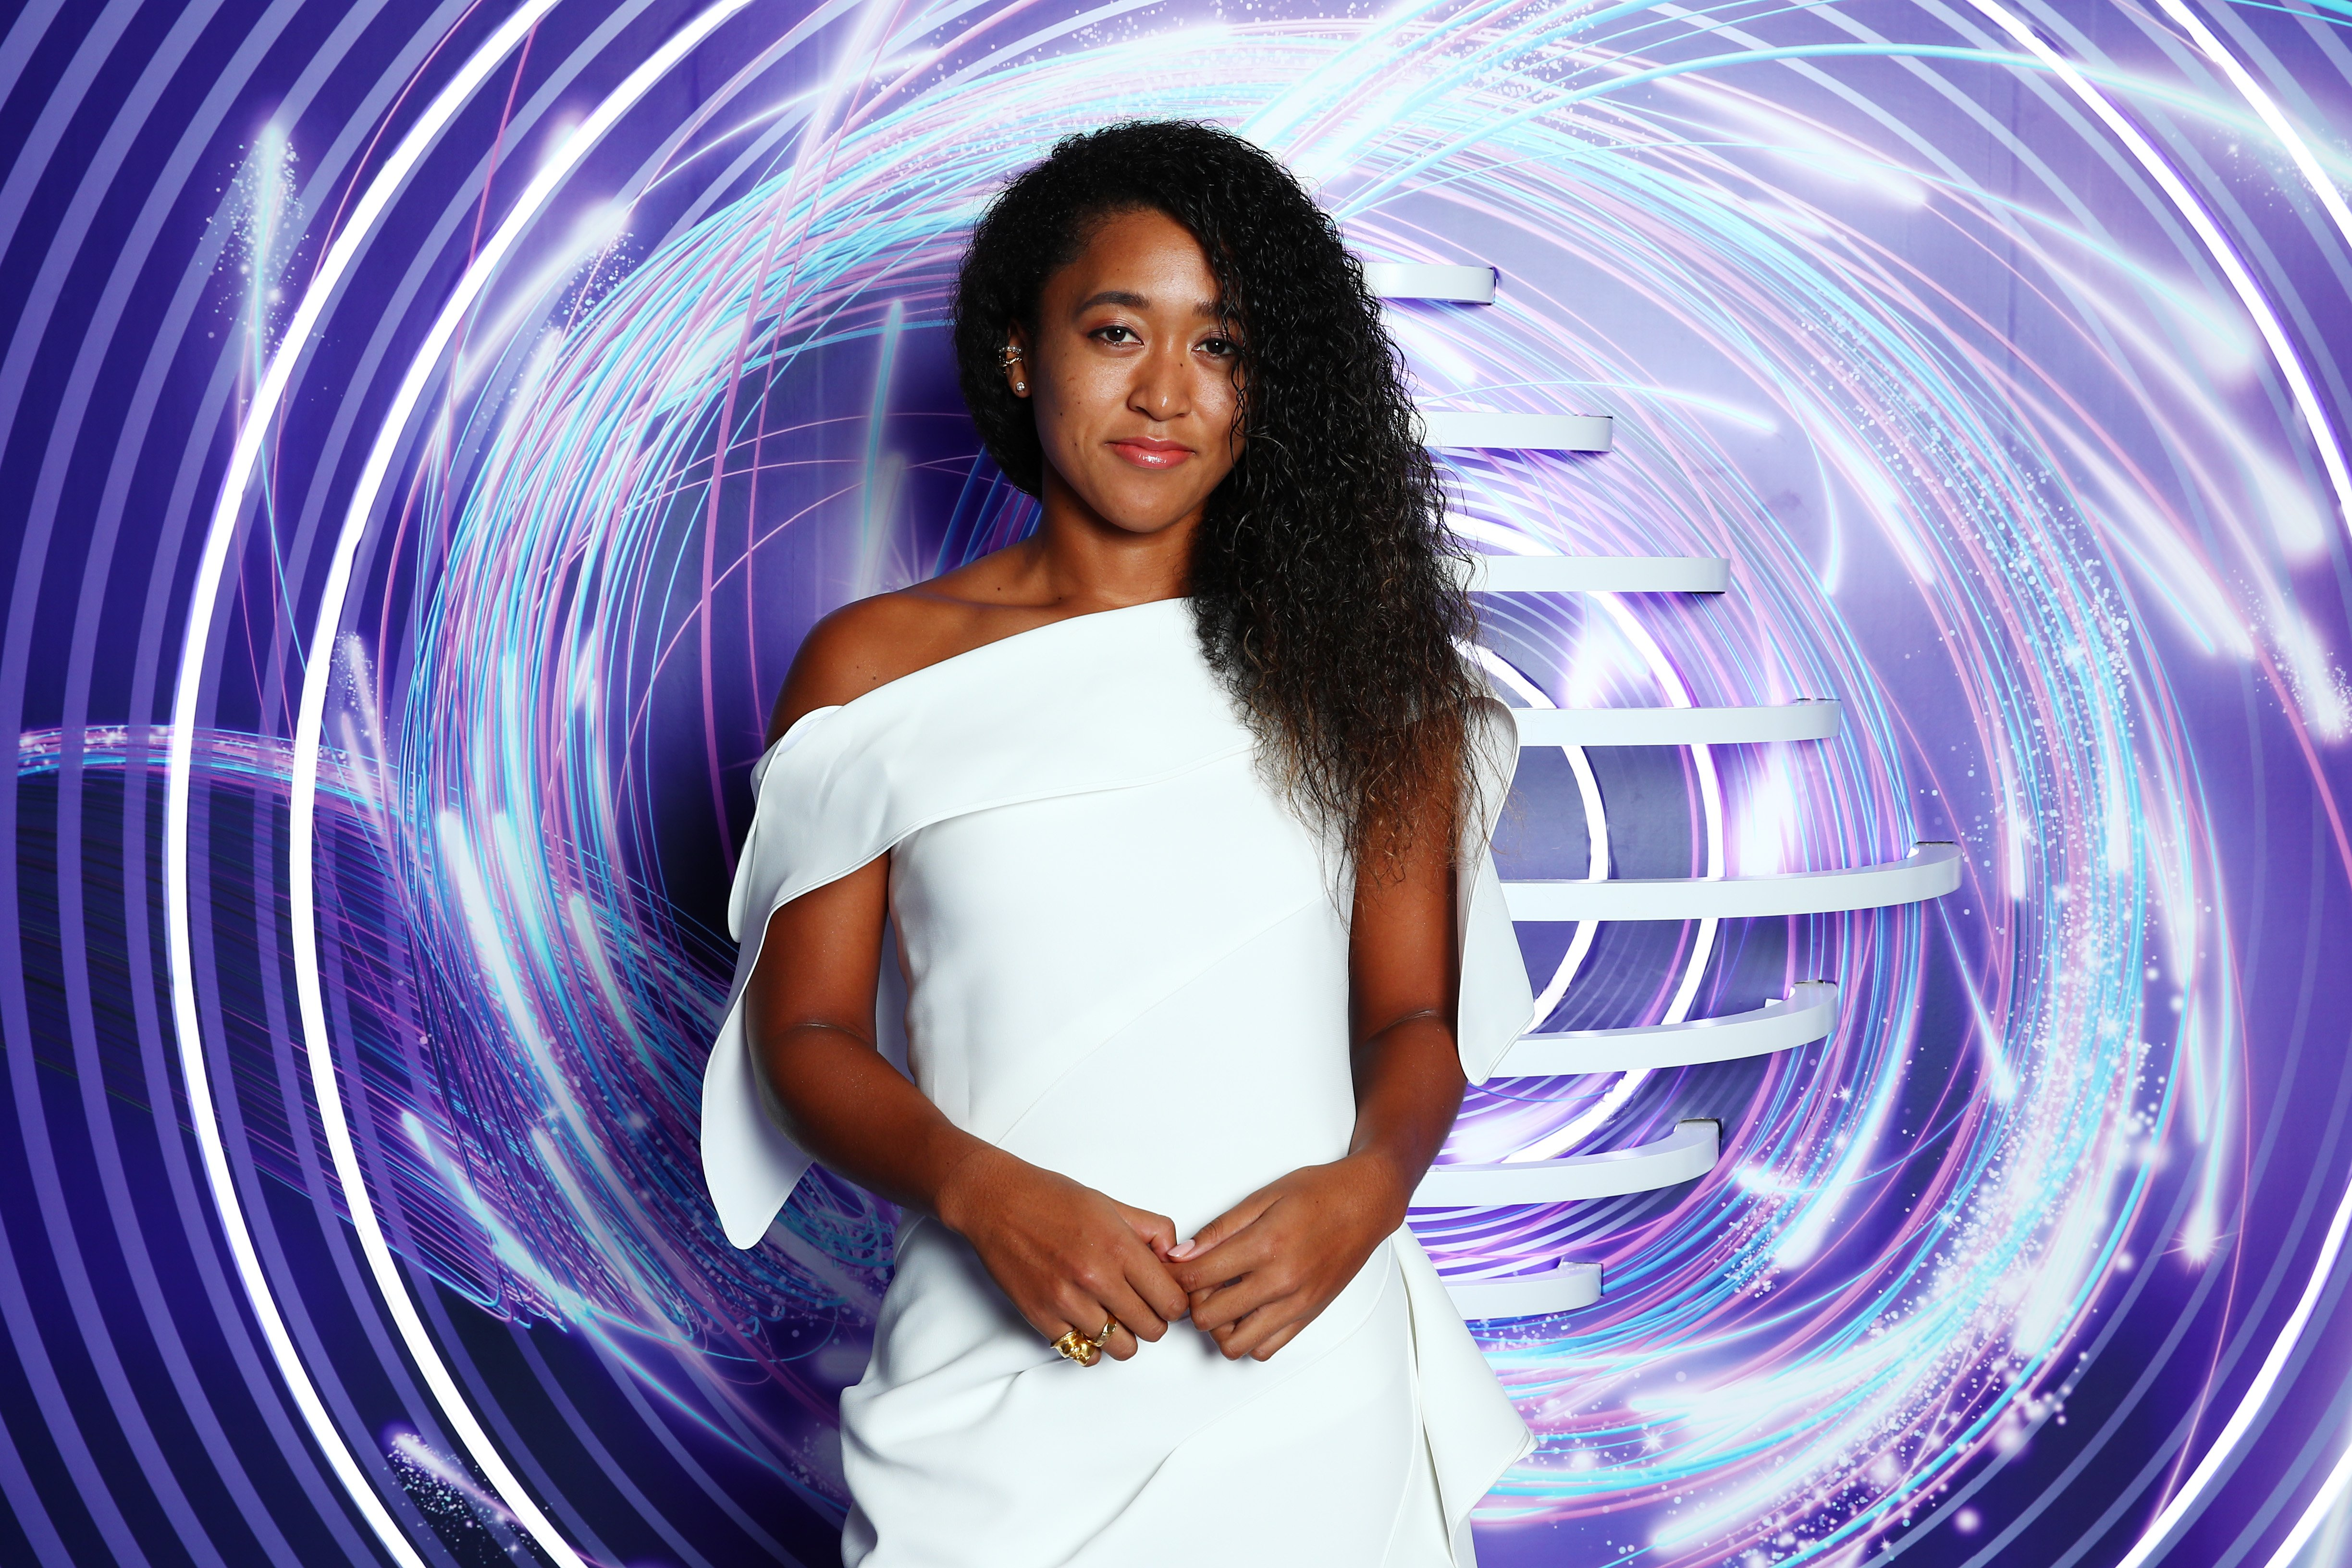 Naomi Osaka attends the Official Draw Ceremony and Gala of the 2019 WTA Finals at Hilton Shenzhen Shekou Nanhai in China on October 25, 2019. | Photo: Getty Images